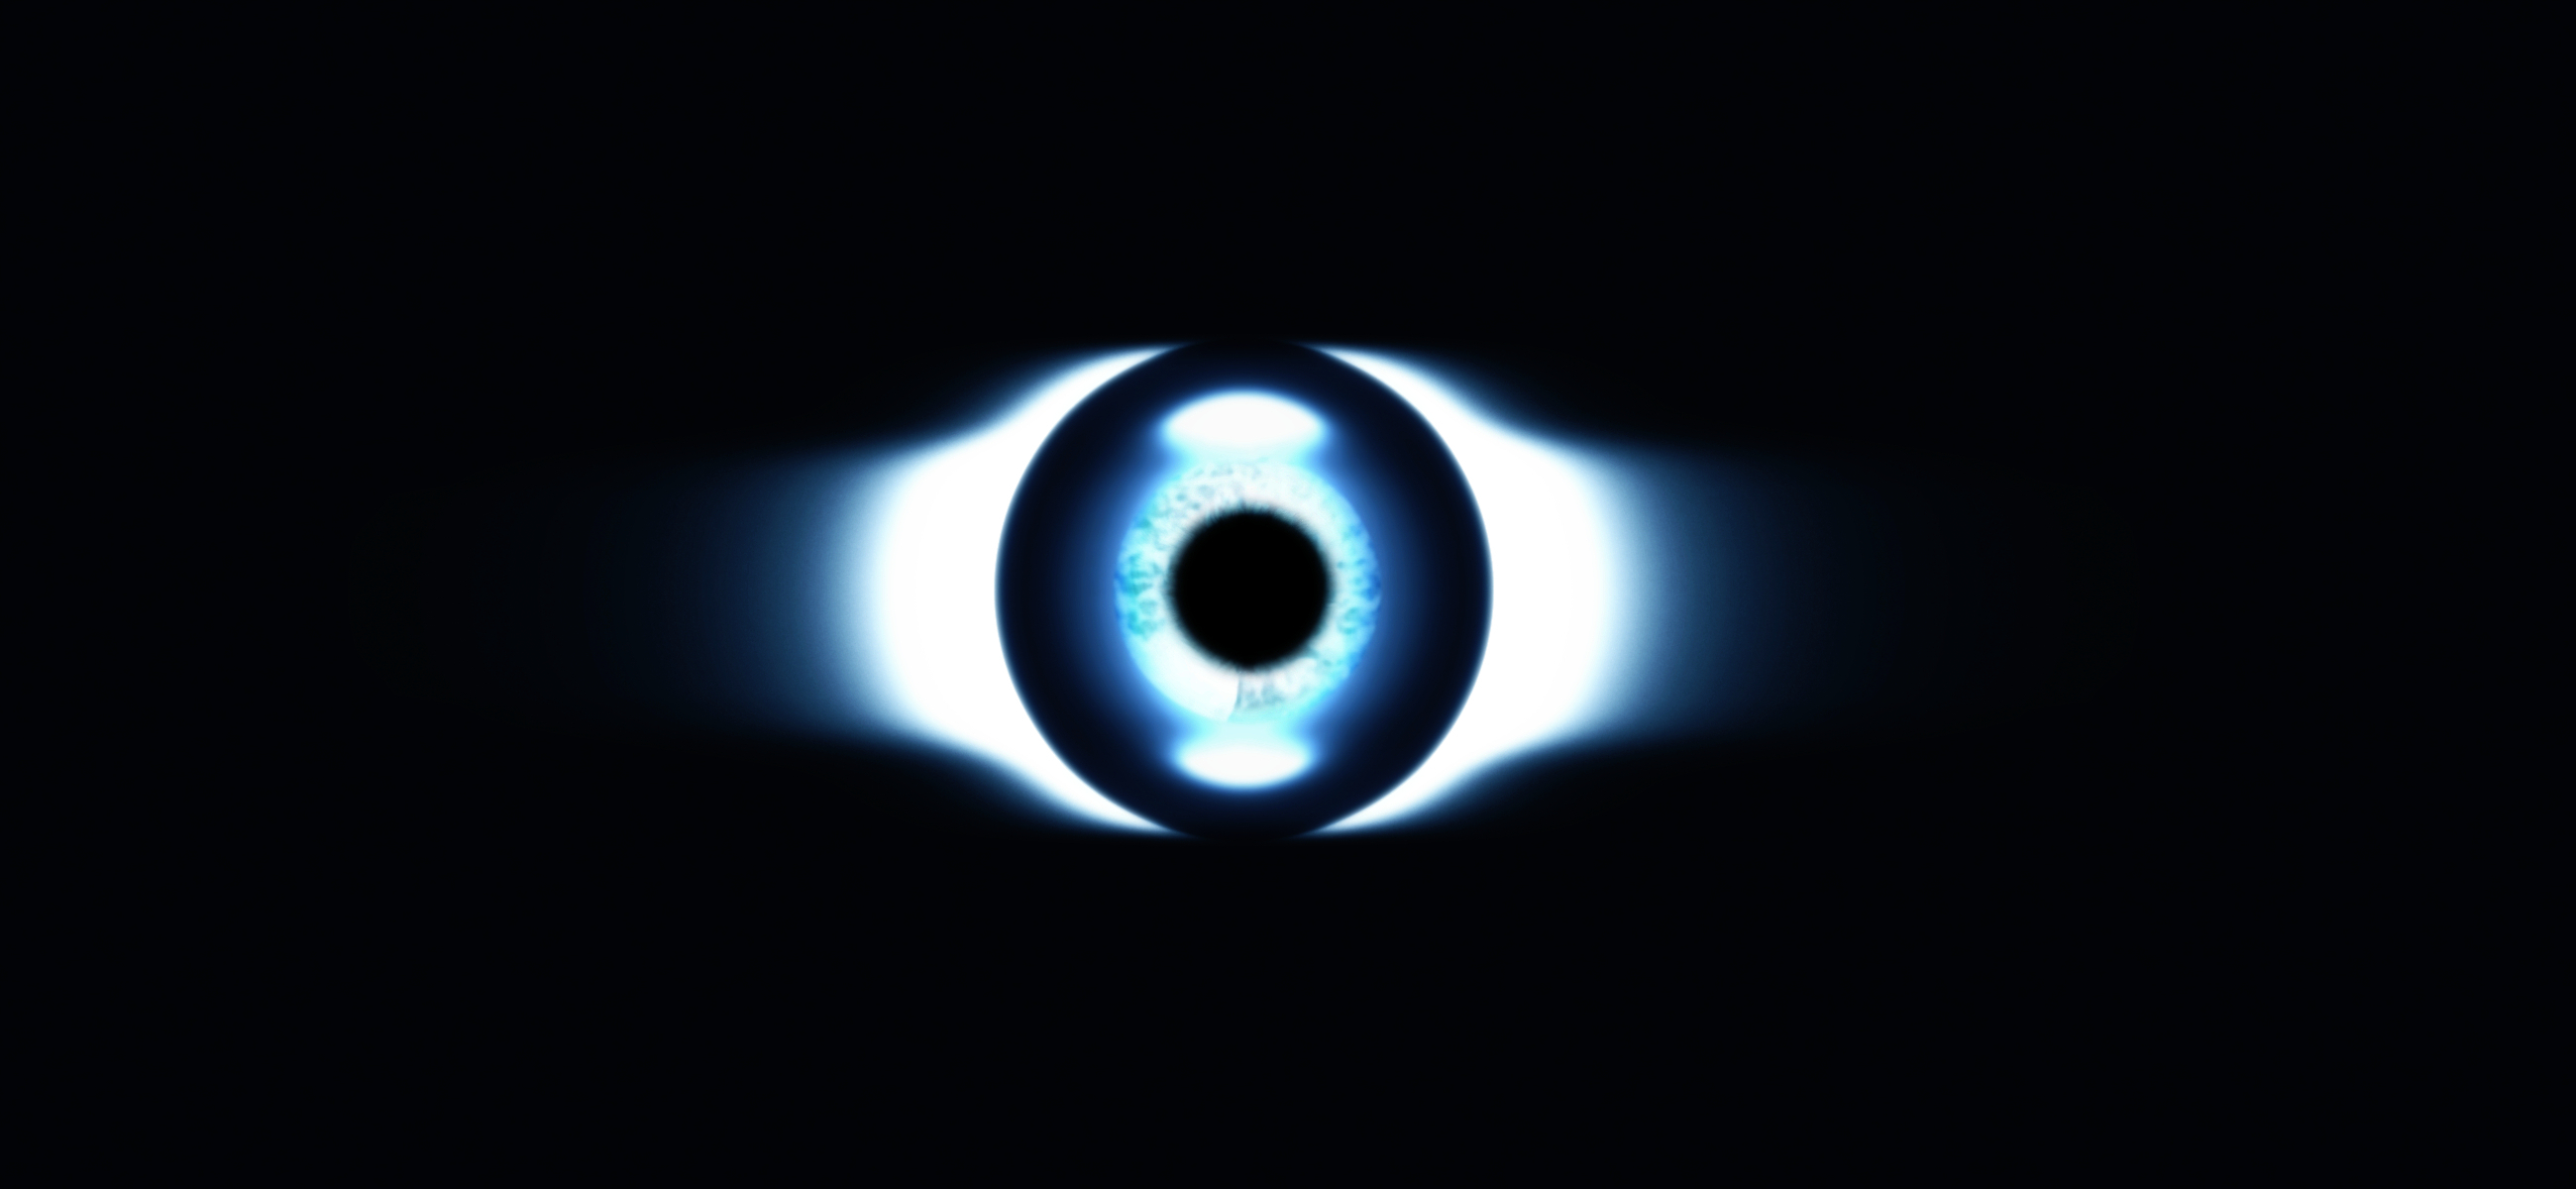 the eye wallpaper #16